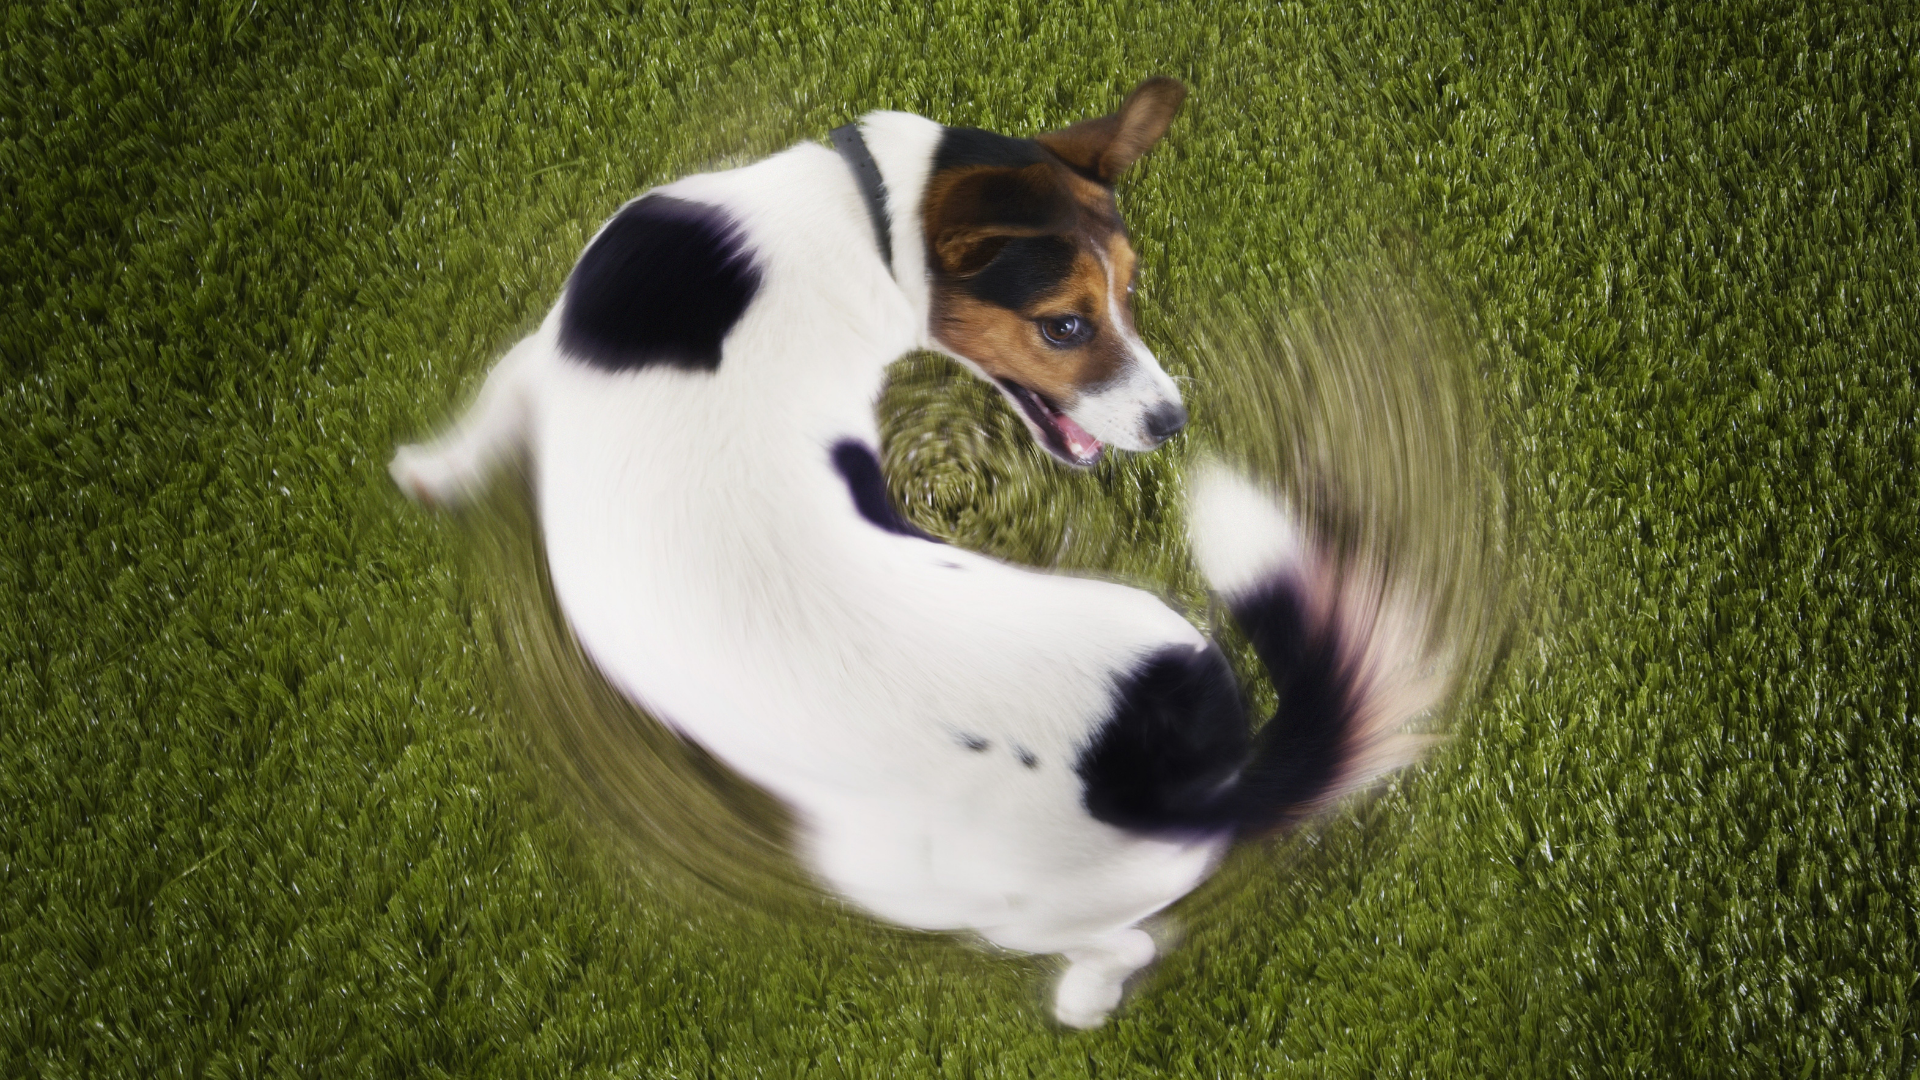 Why does my dog chase his tail?